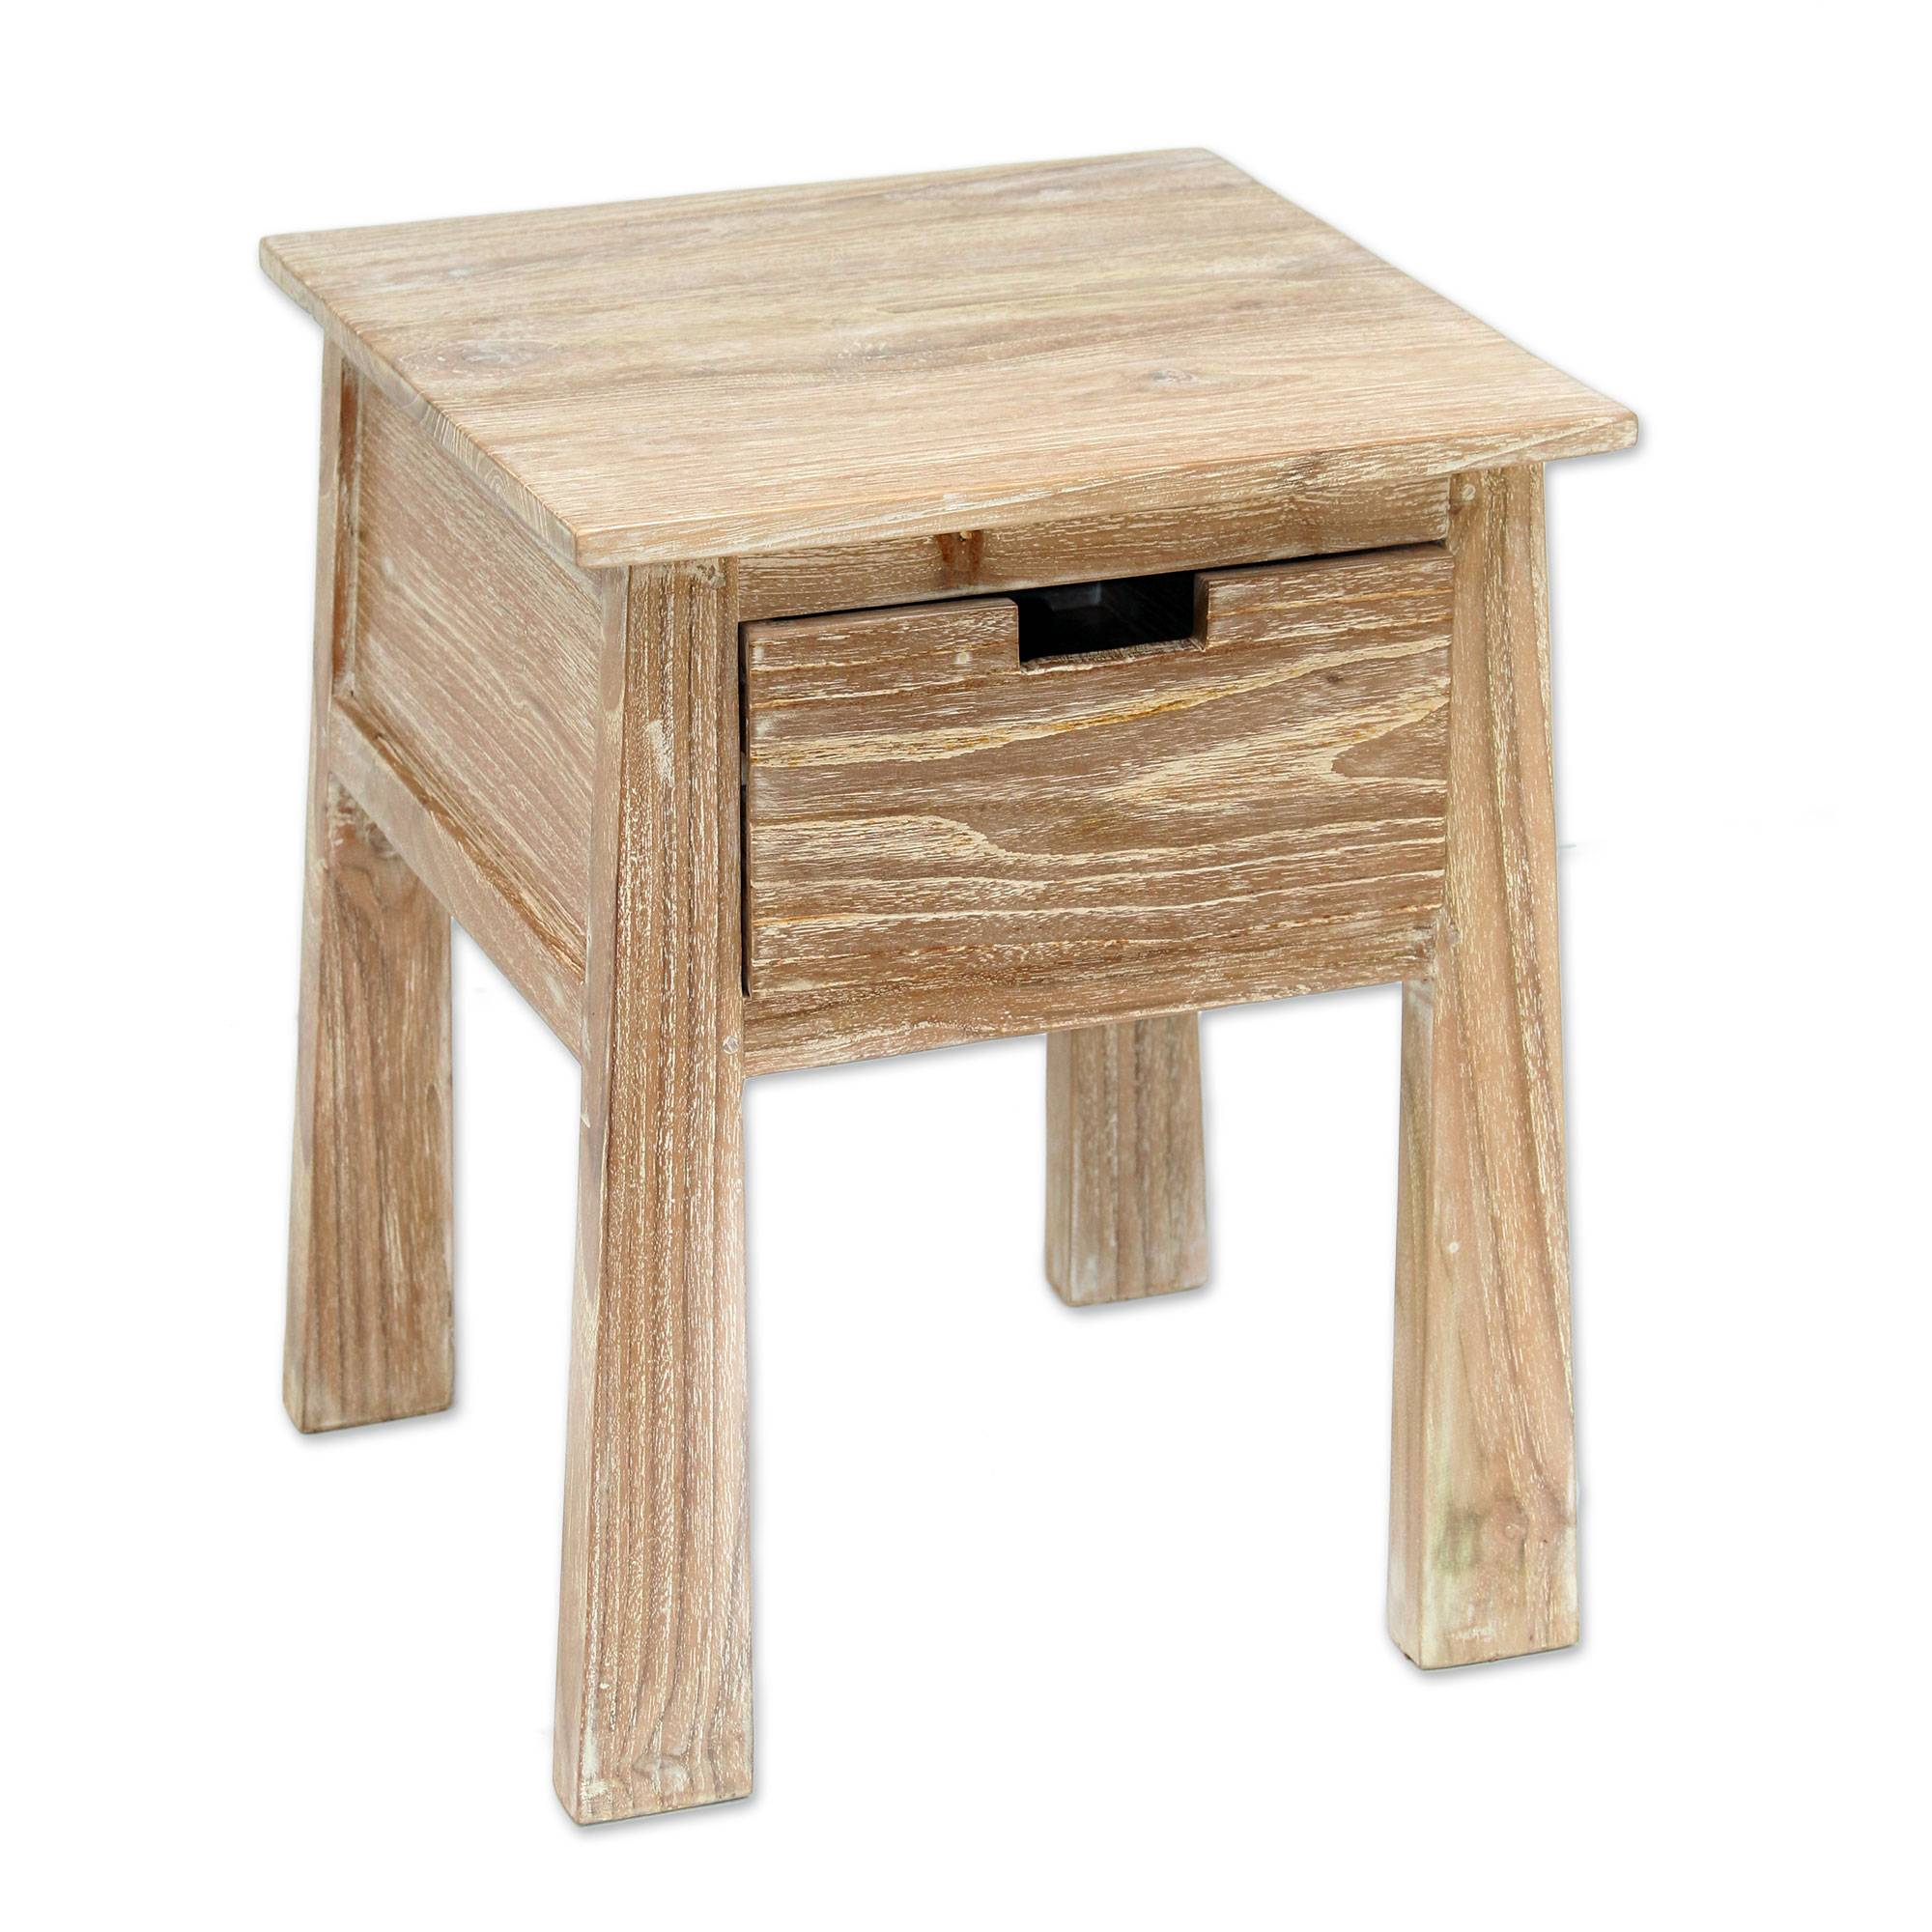 Craftsman in white handcrafted teakwood one drawer whitewashed accent table